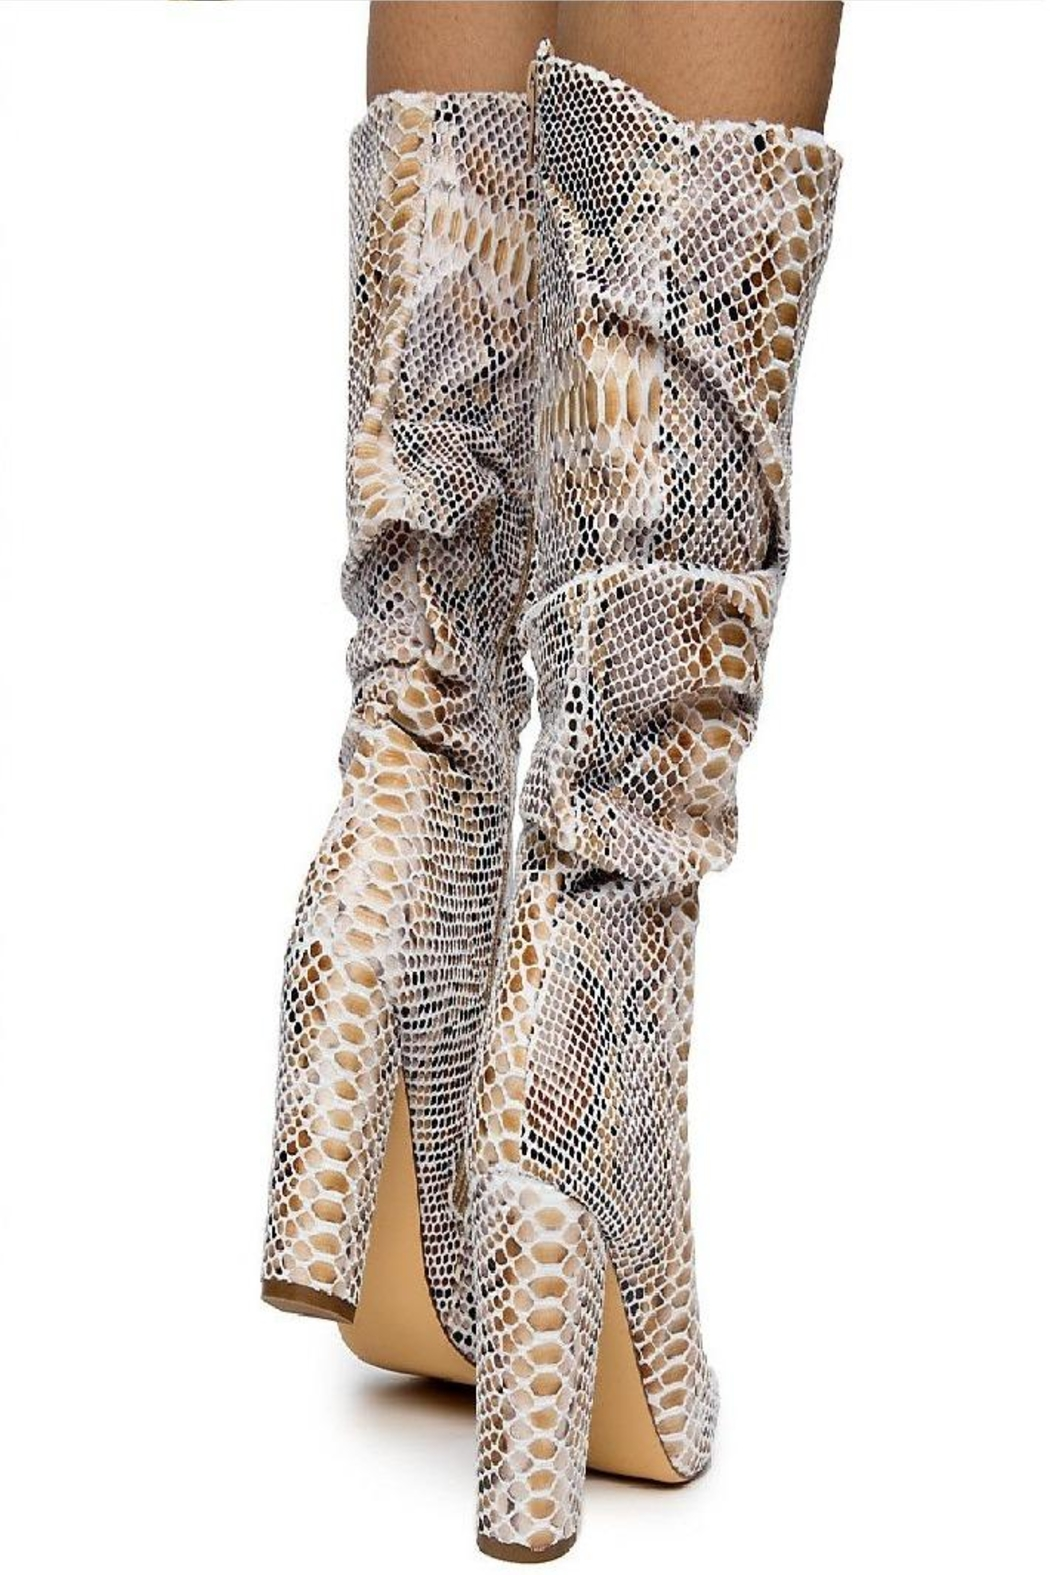 liliana Liliana Hariot-1 Women's Half Calf Boot Beige - Side Cropped Image